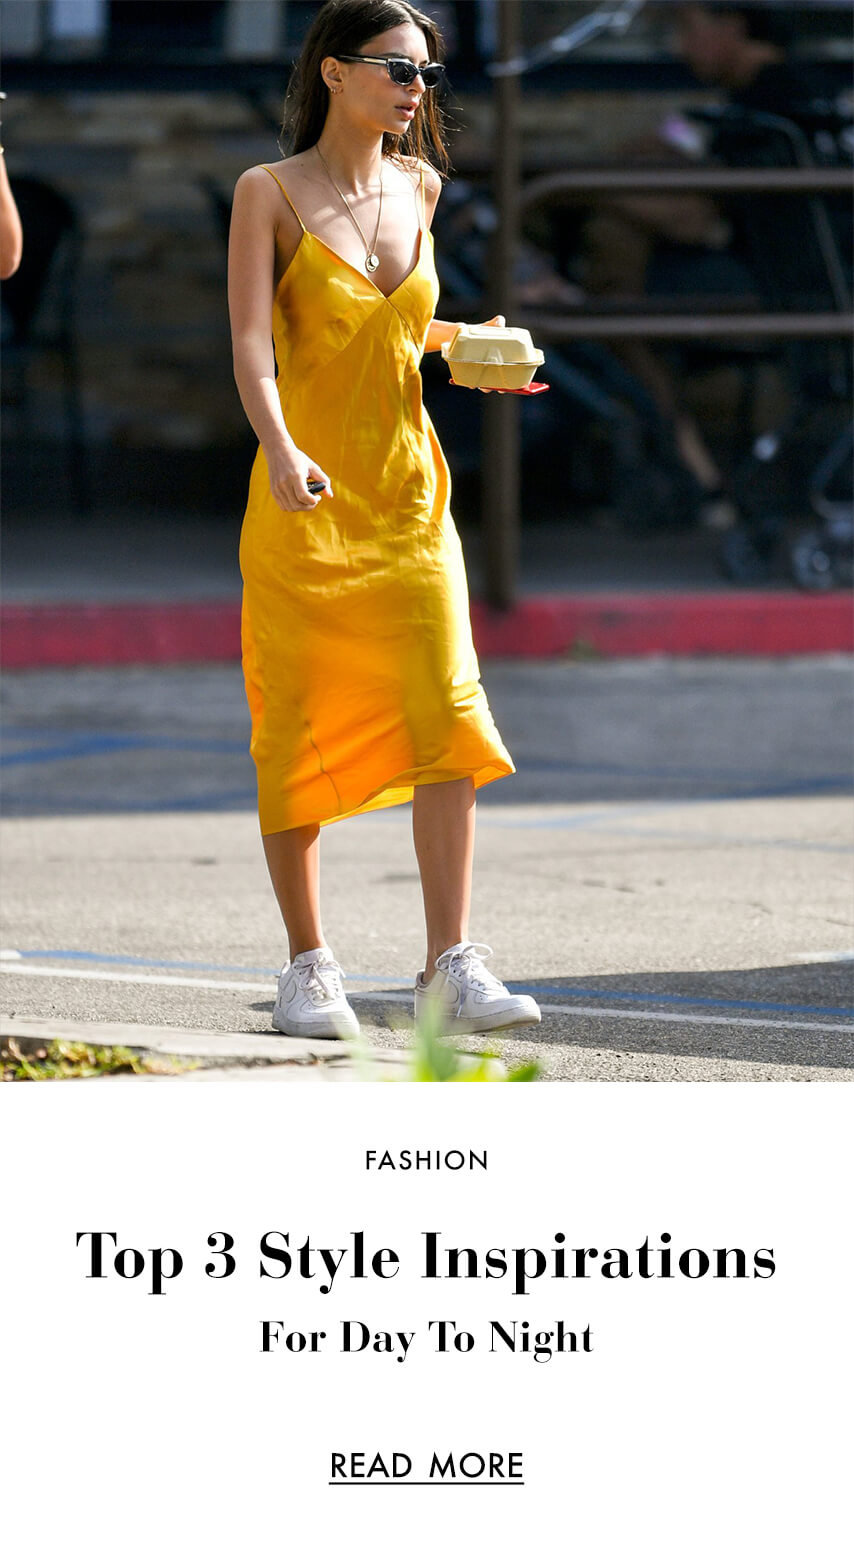 Top 3 Style Inspirations  For Day To Night